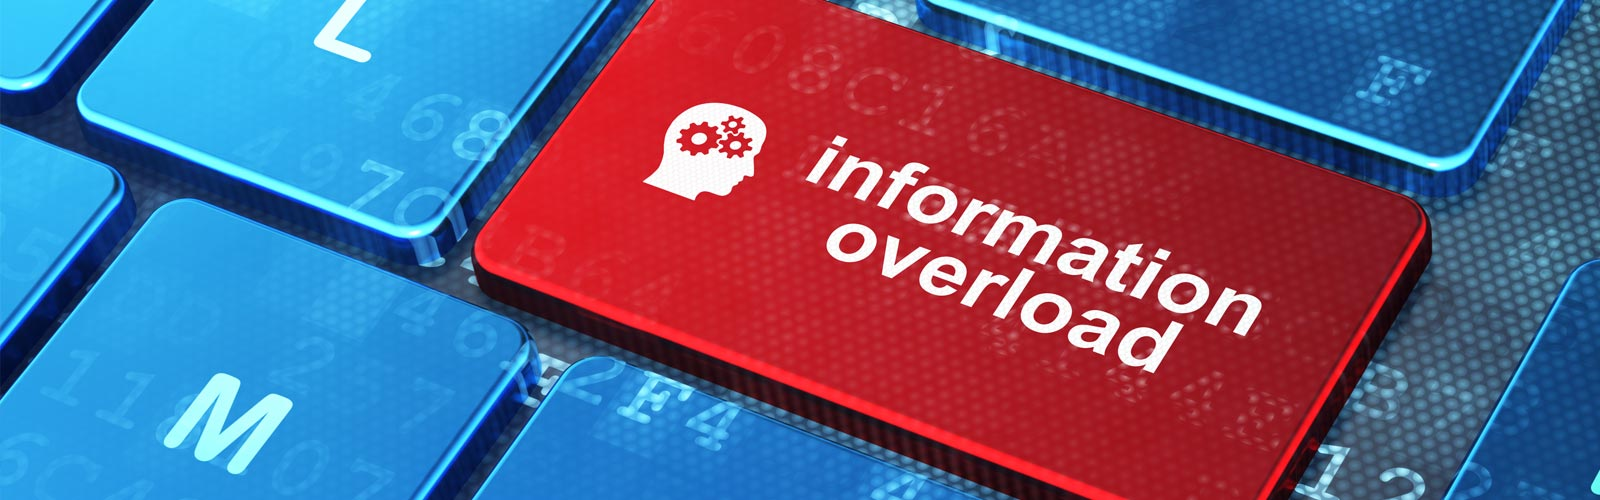 Taming Information Overload